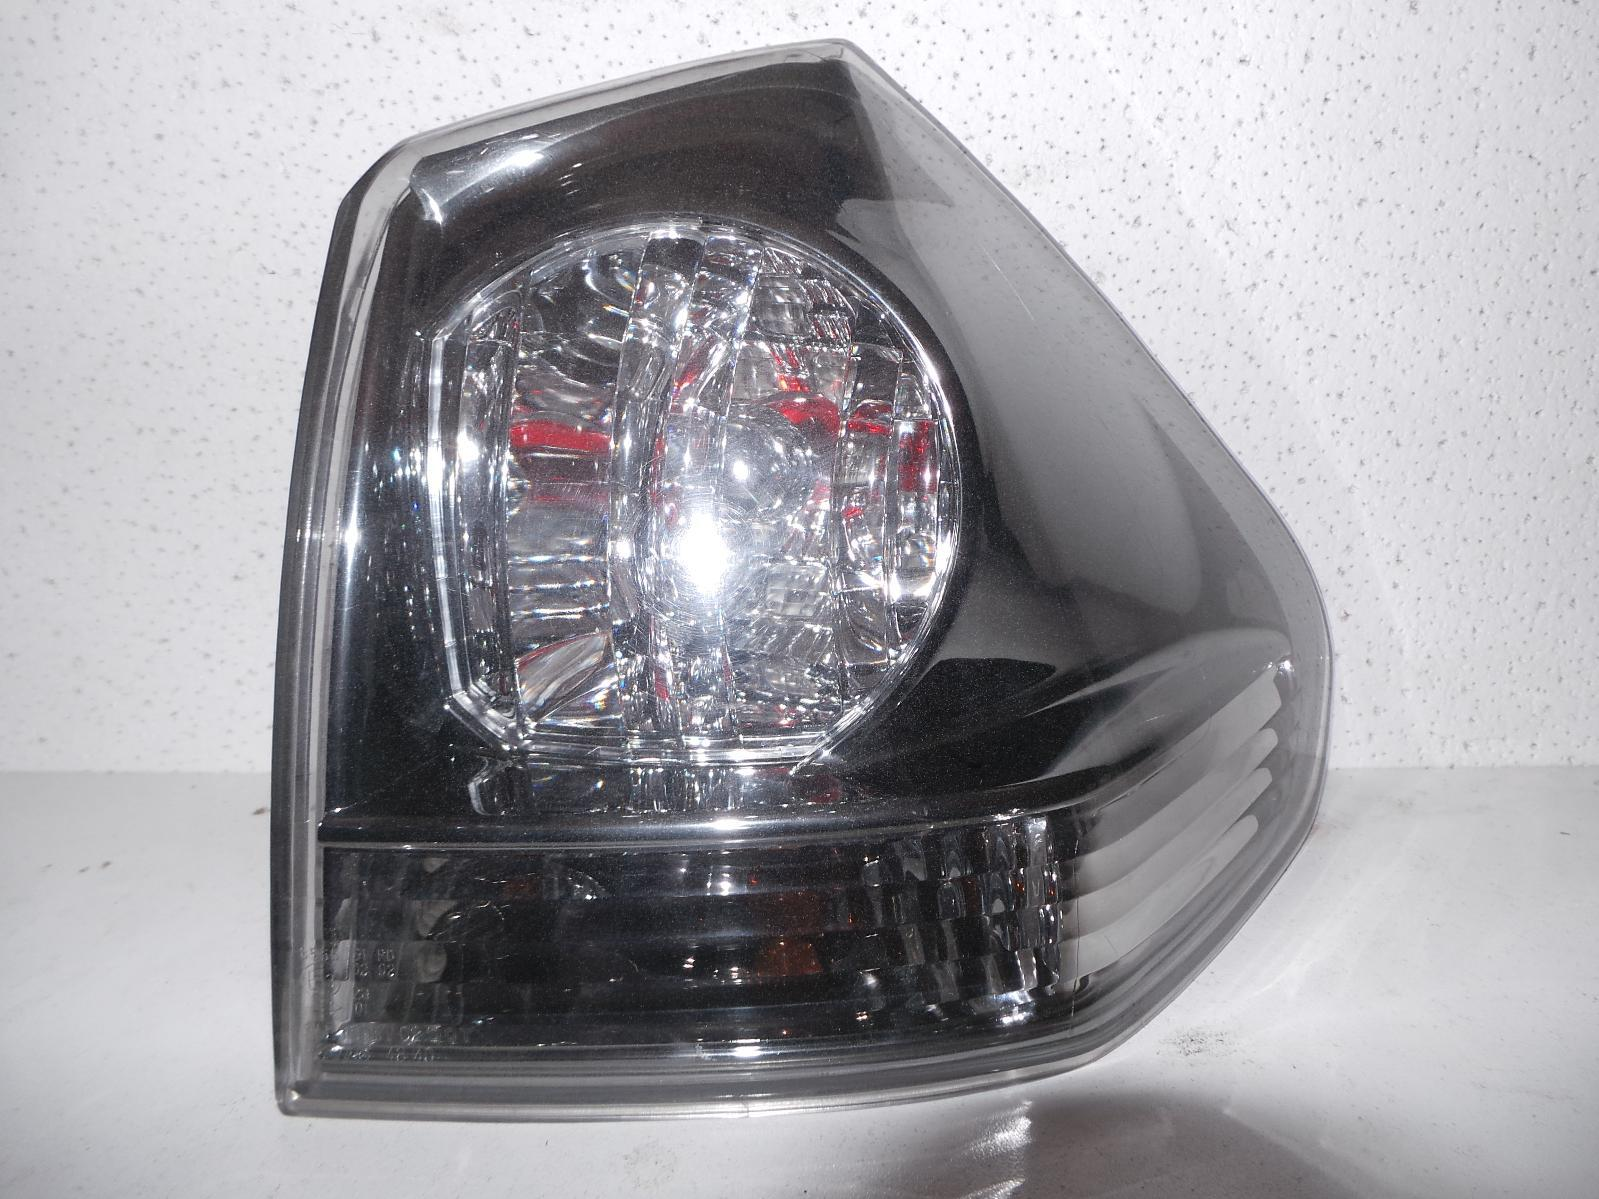 LEXUS RX330, Right Taillight, IN BODY, 04/03-12/05